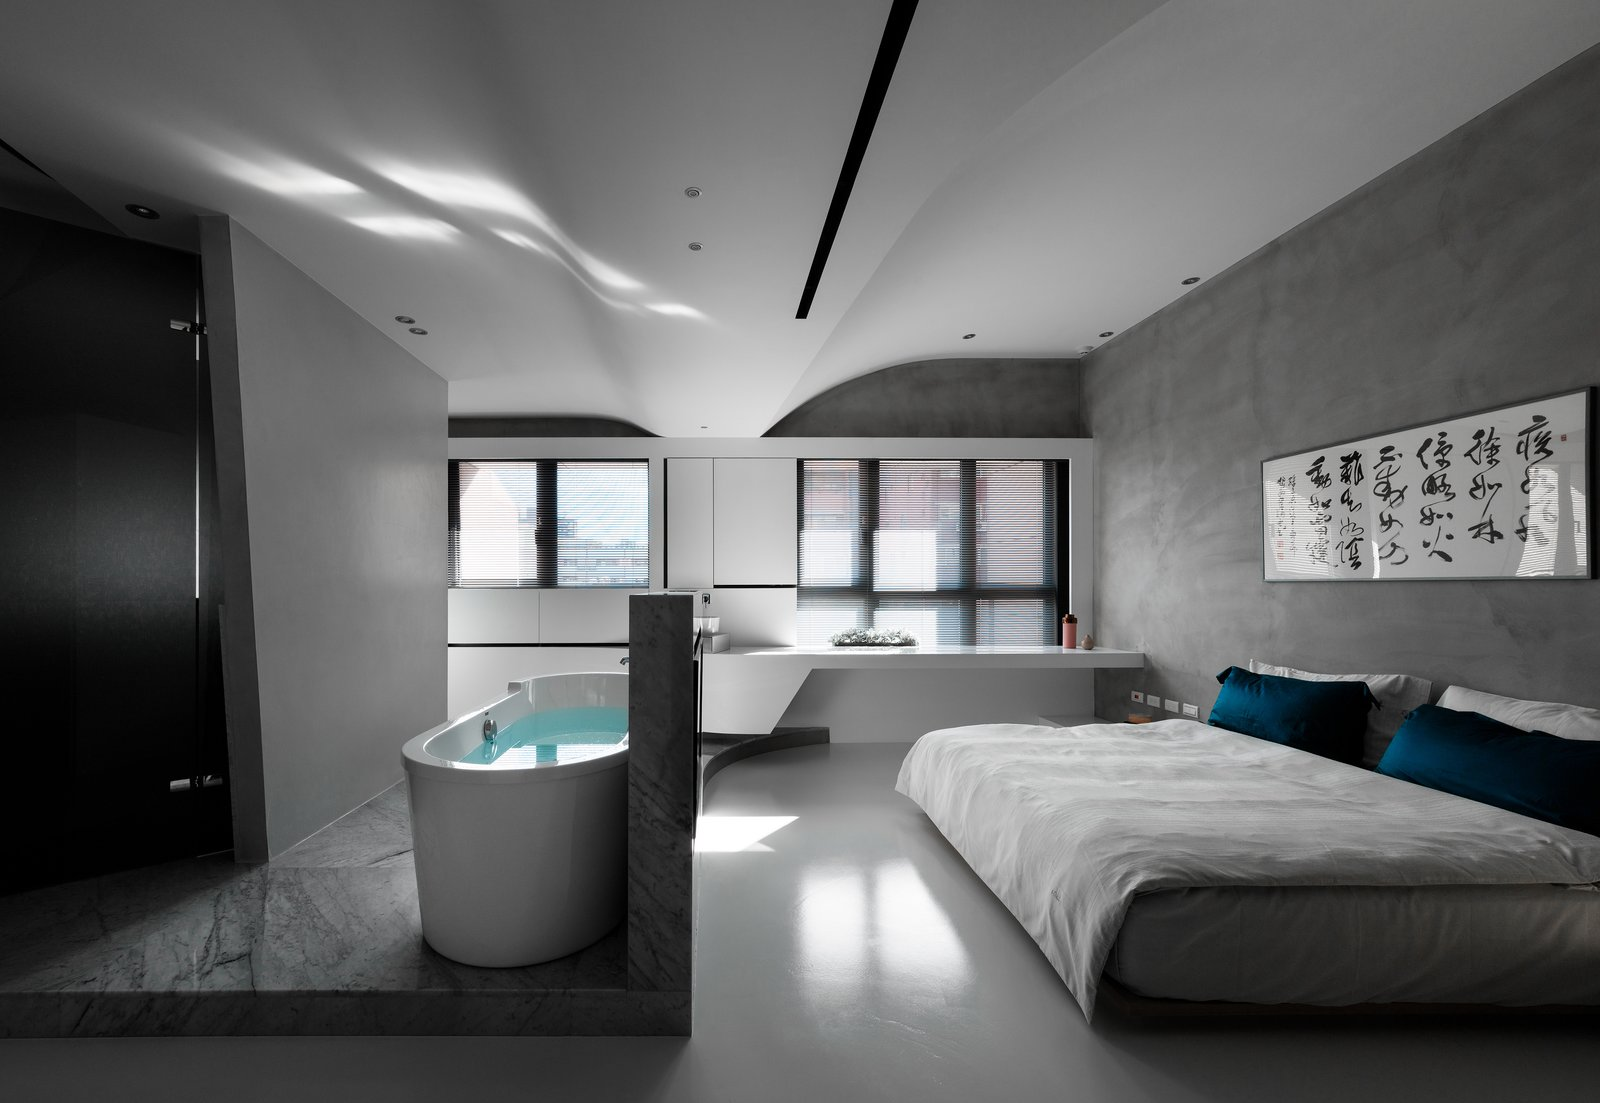 Bedroom, Ceiling Lighting, Marble Floor, Bed, and Concrete Floor The bathtub splits from the bathroom and is separately located in the middle, diverting the circulation around it.  Fluid House